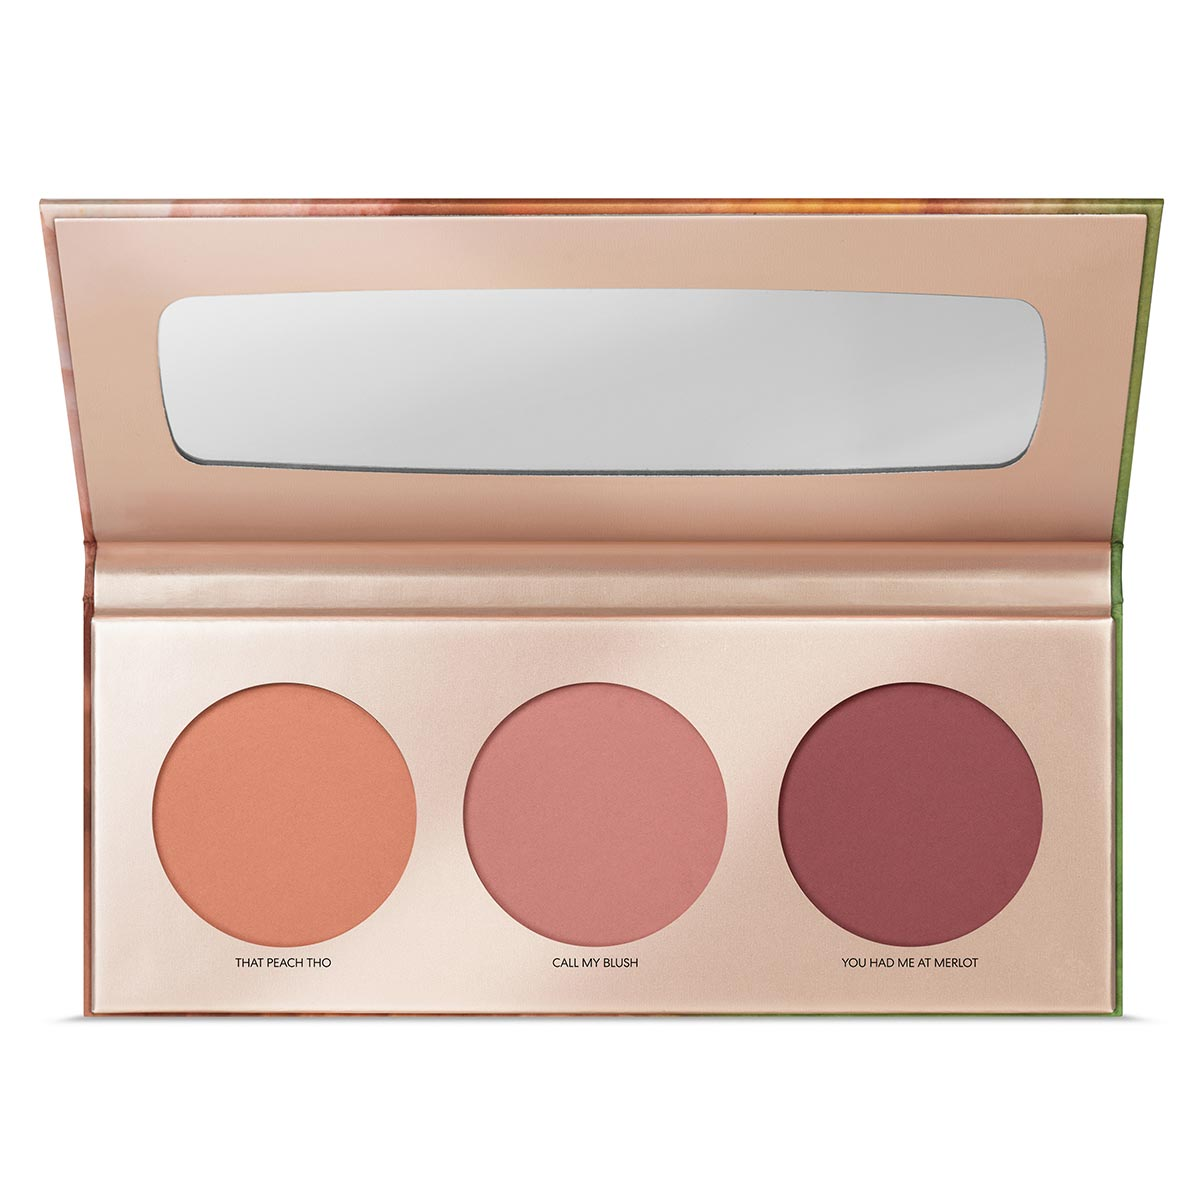 bareMinerals Desert Bloom Gen Nude Mini Blush Trio Palette